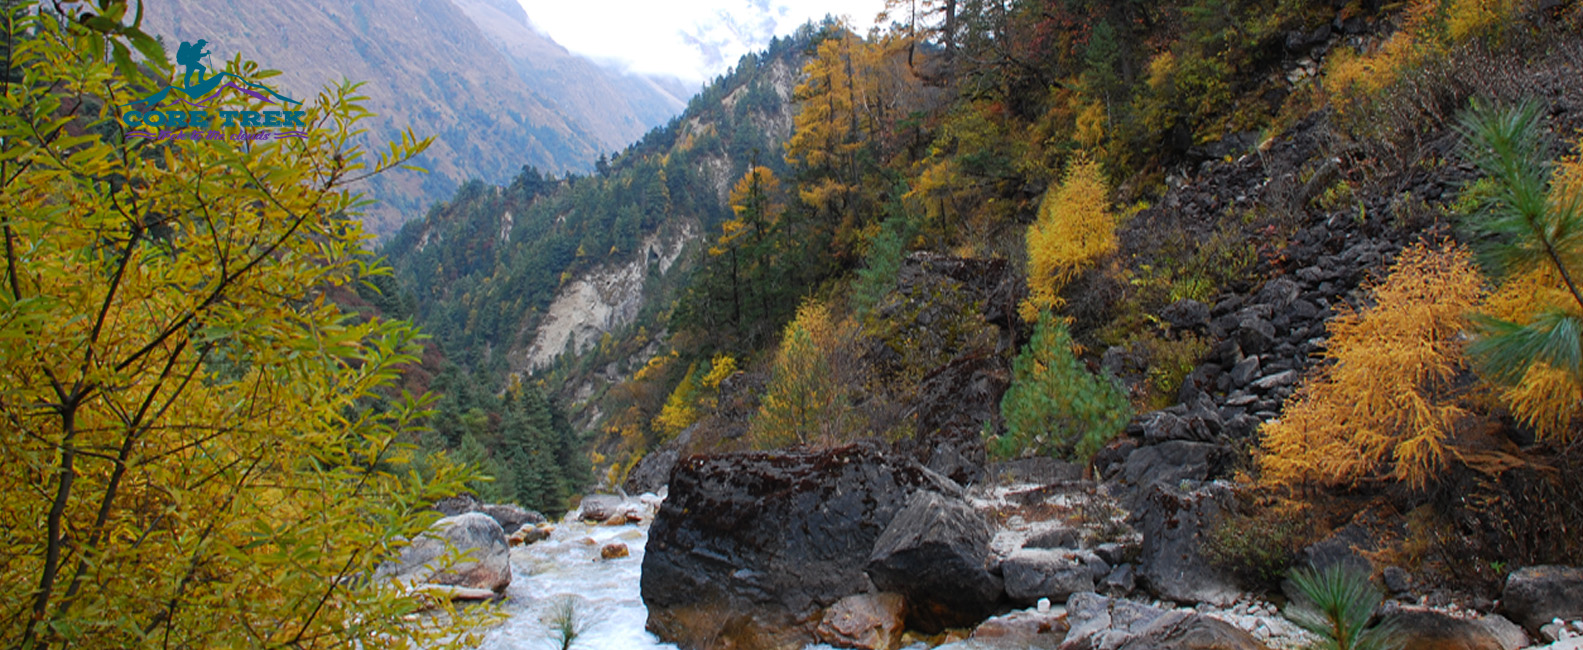 Tsum Valley Trekking In Nepal